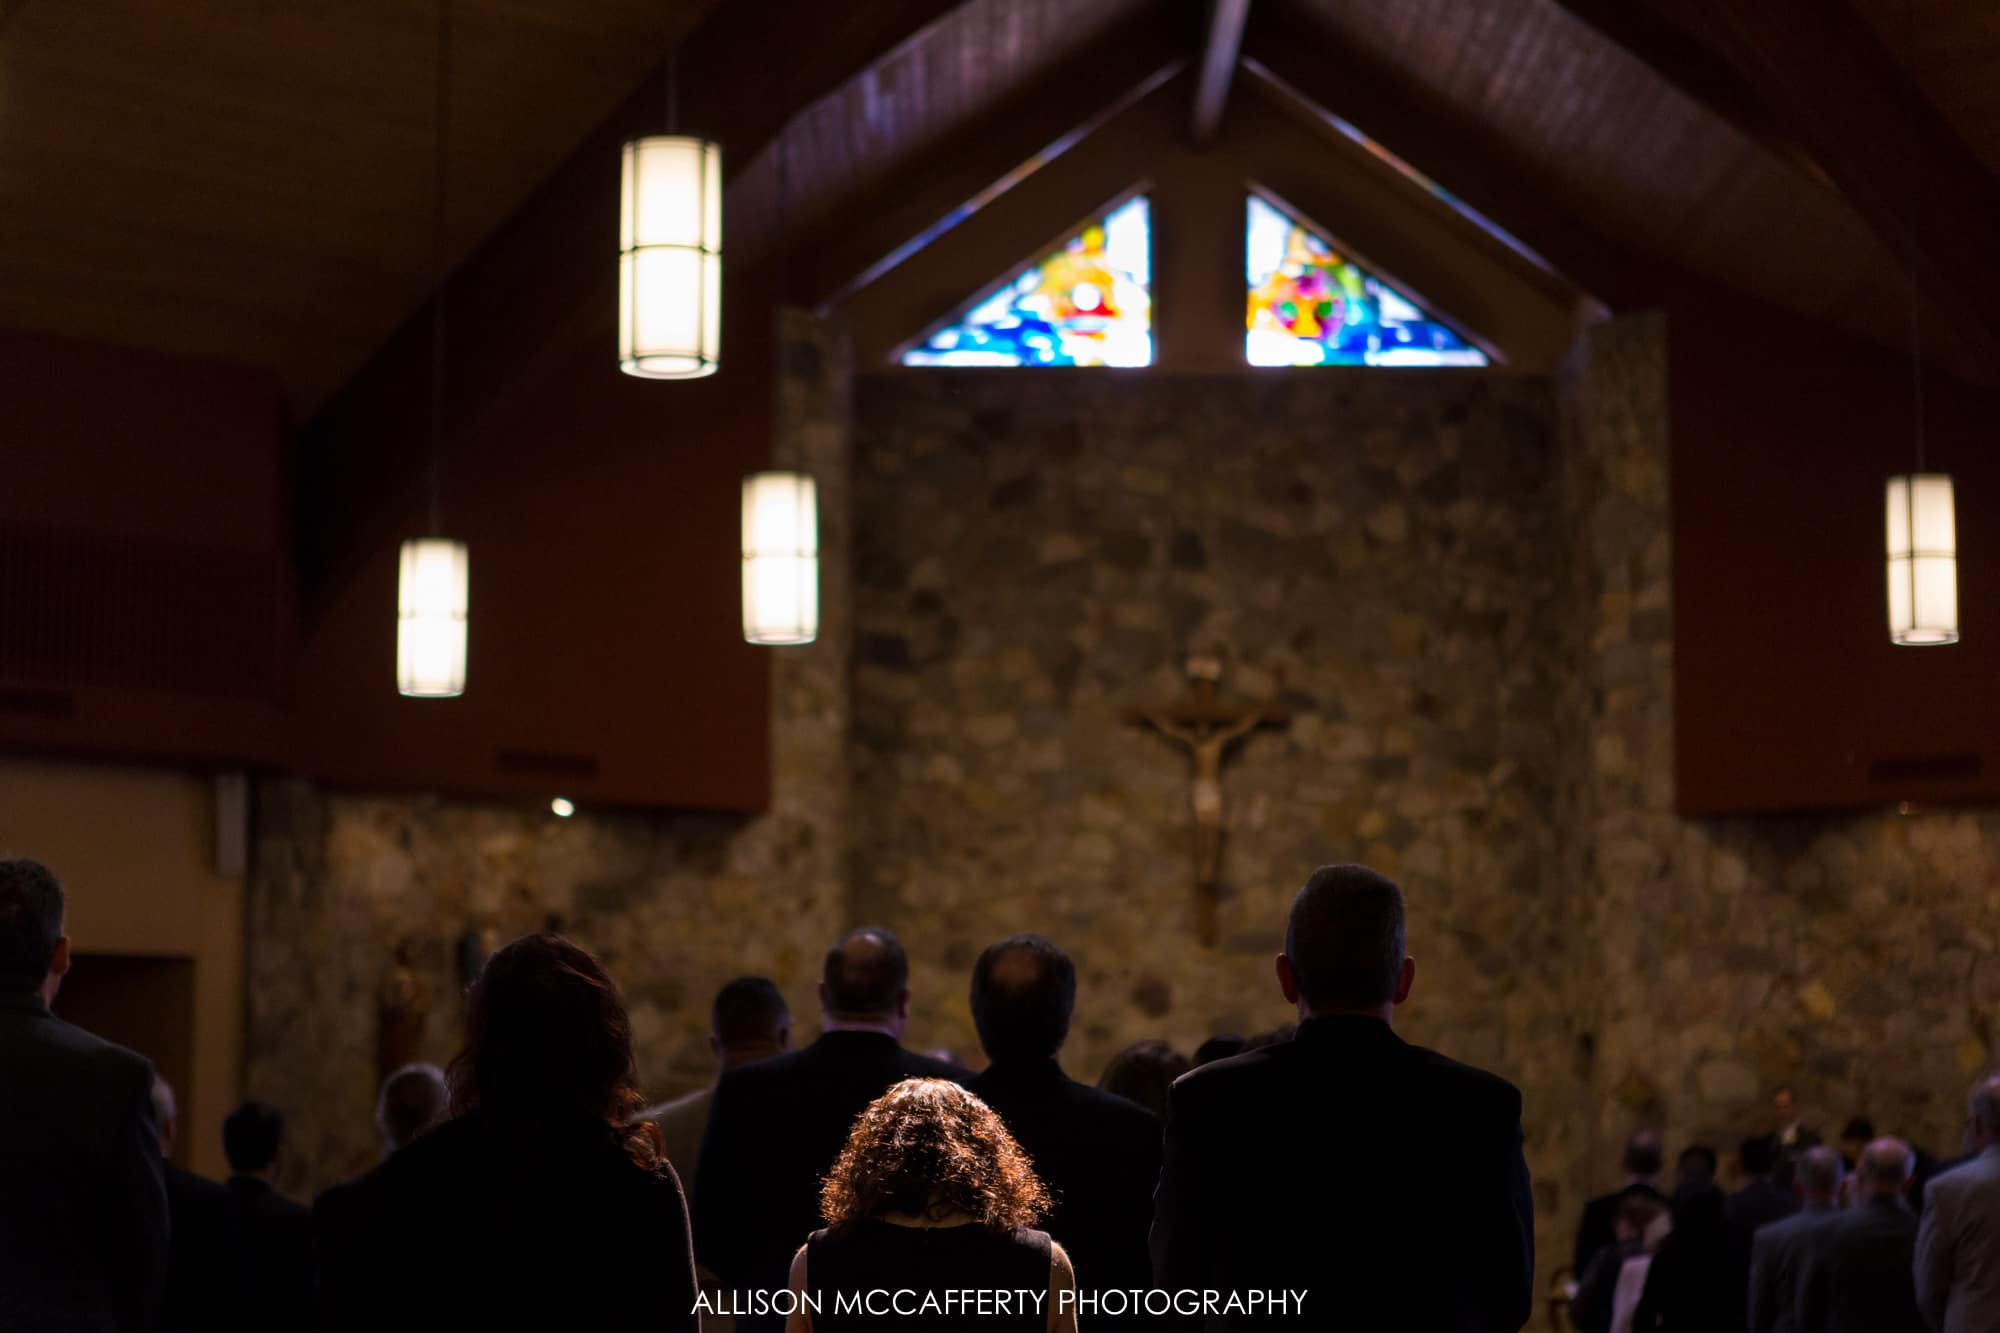 Sunlight coming in through church windows during wedding